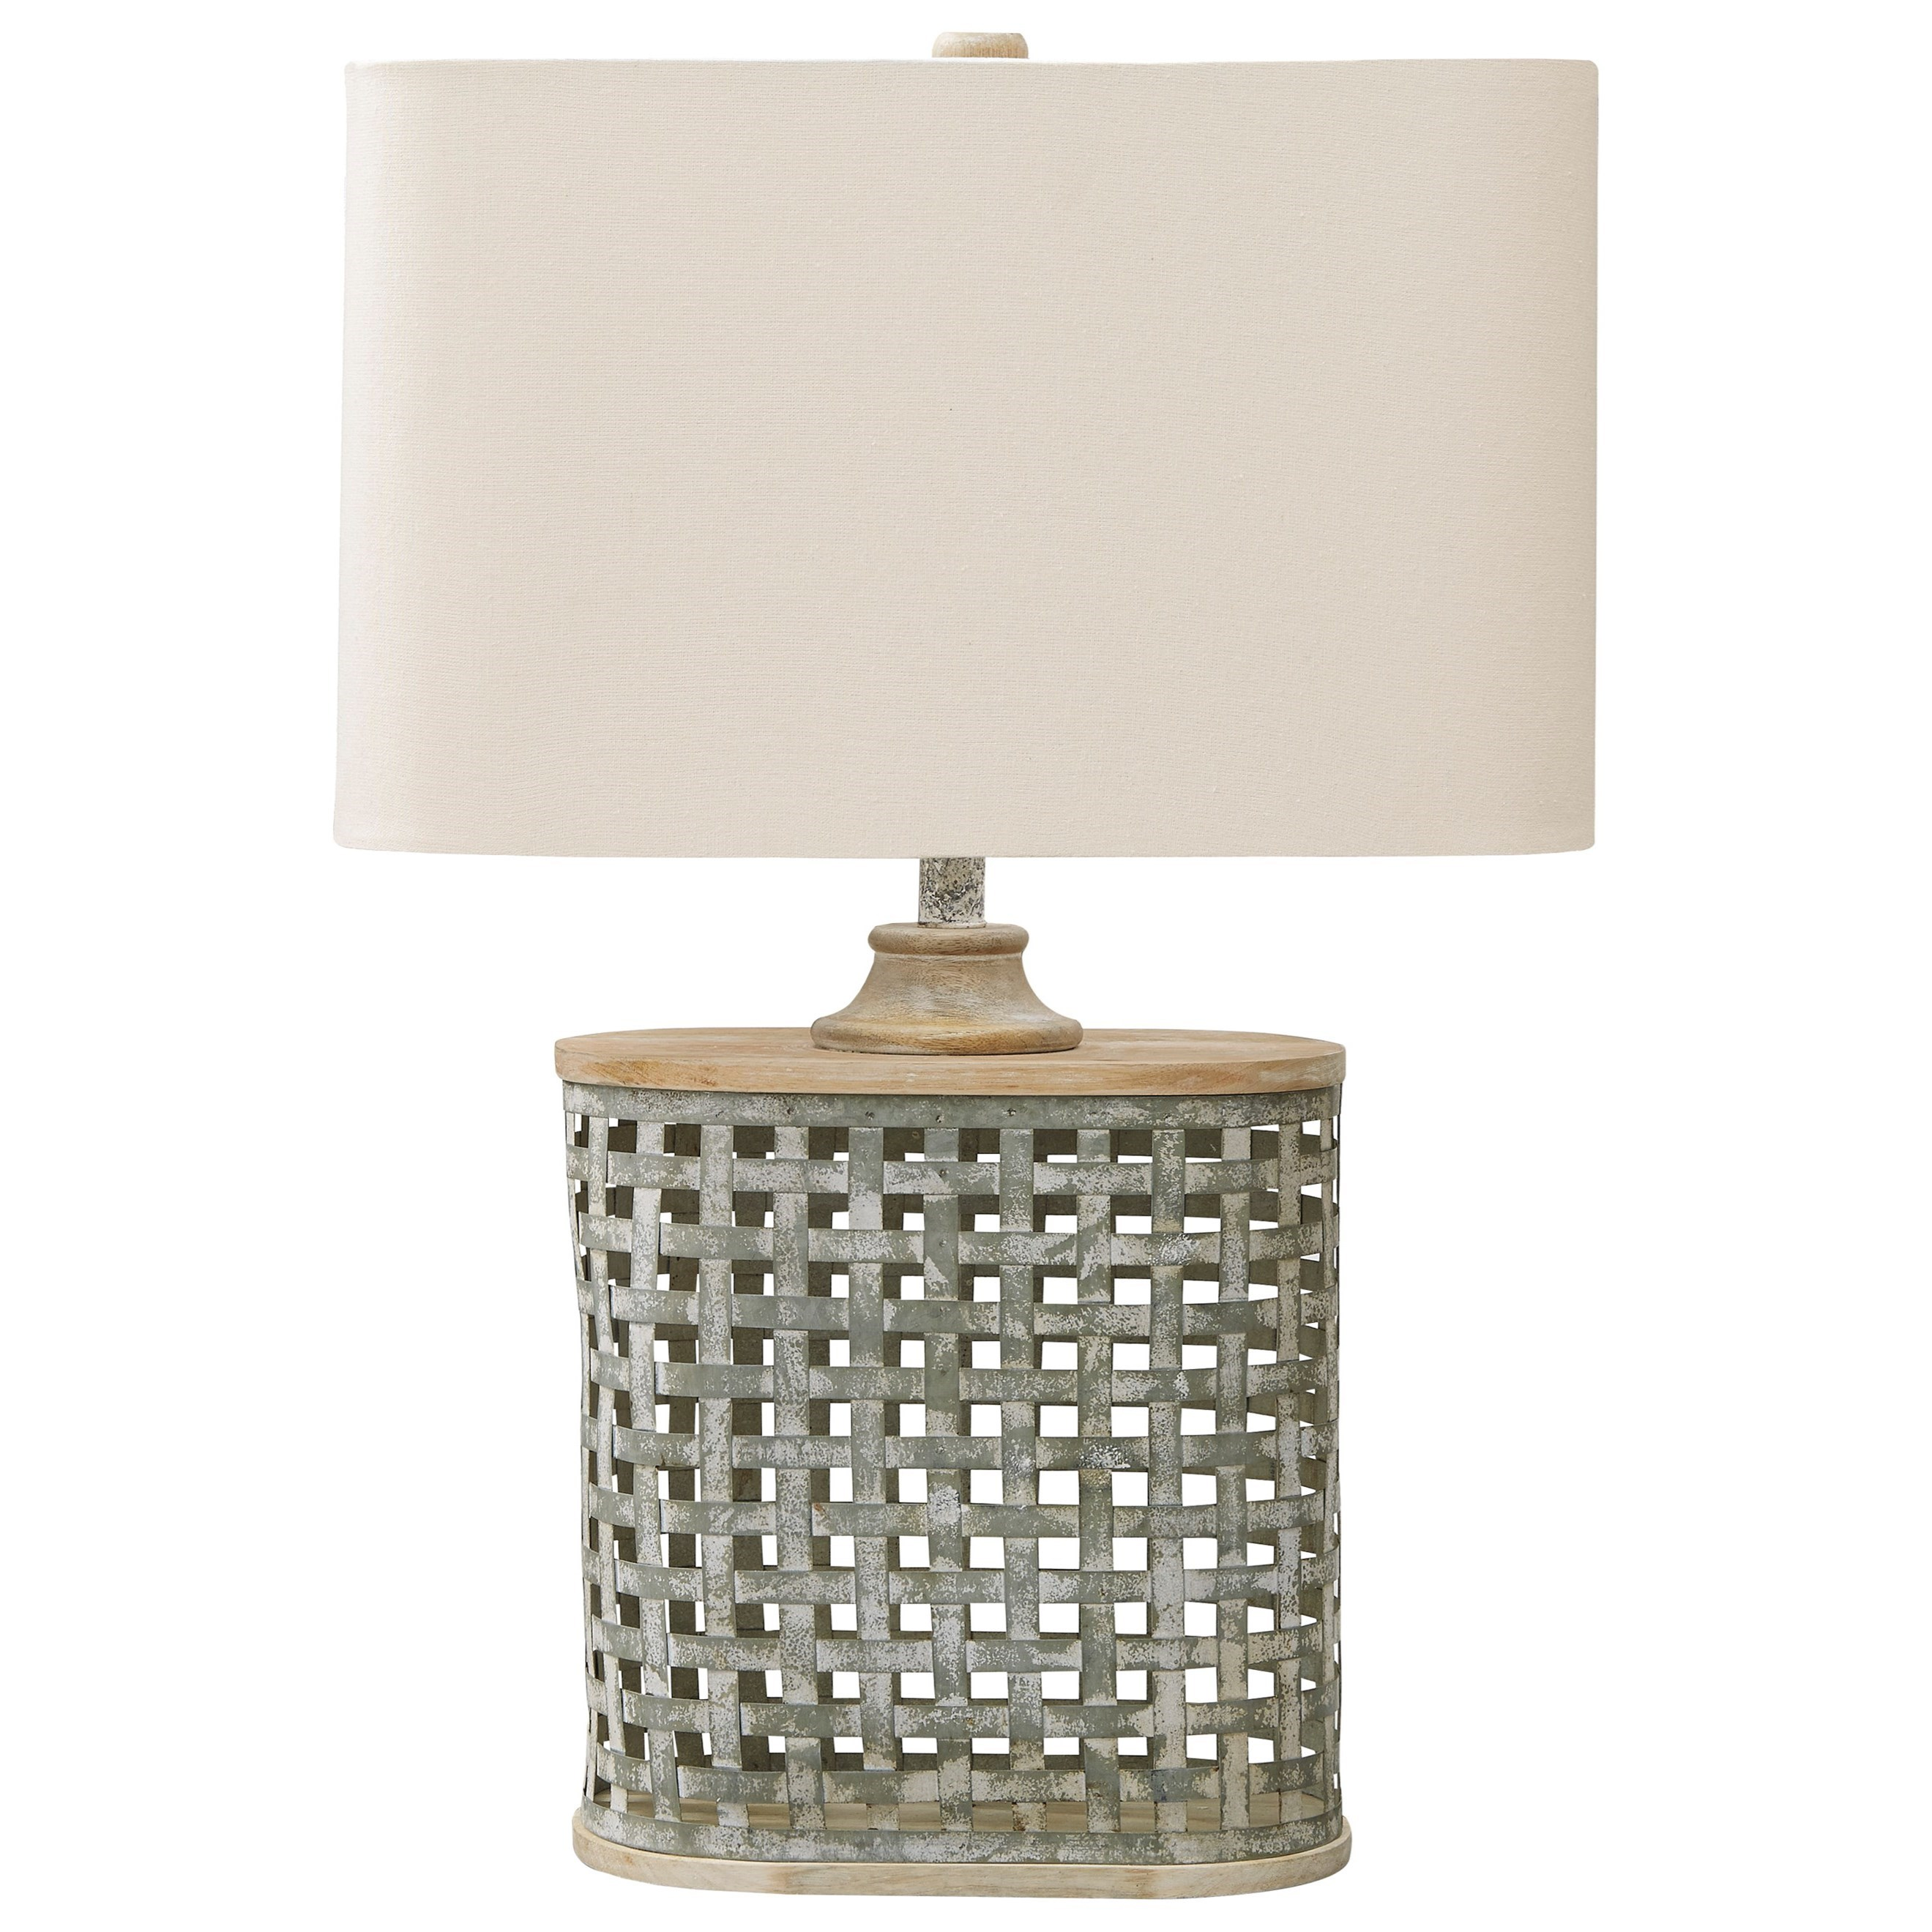 Lamps - Casual Deondra Gray Metal Table Lamp by Ashley (Signature Design) at Johnny Janosik